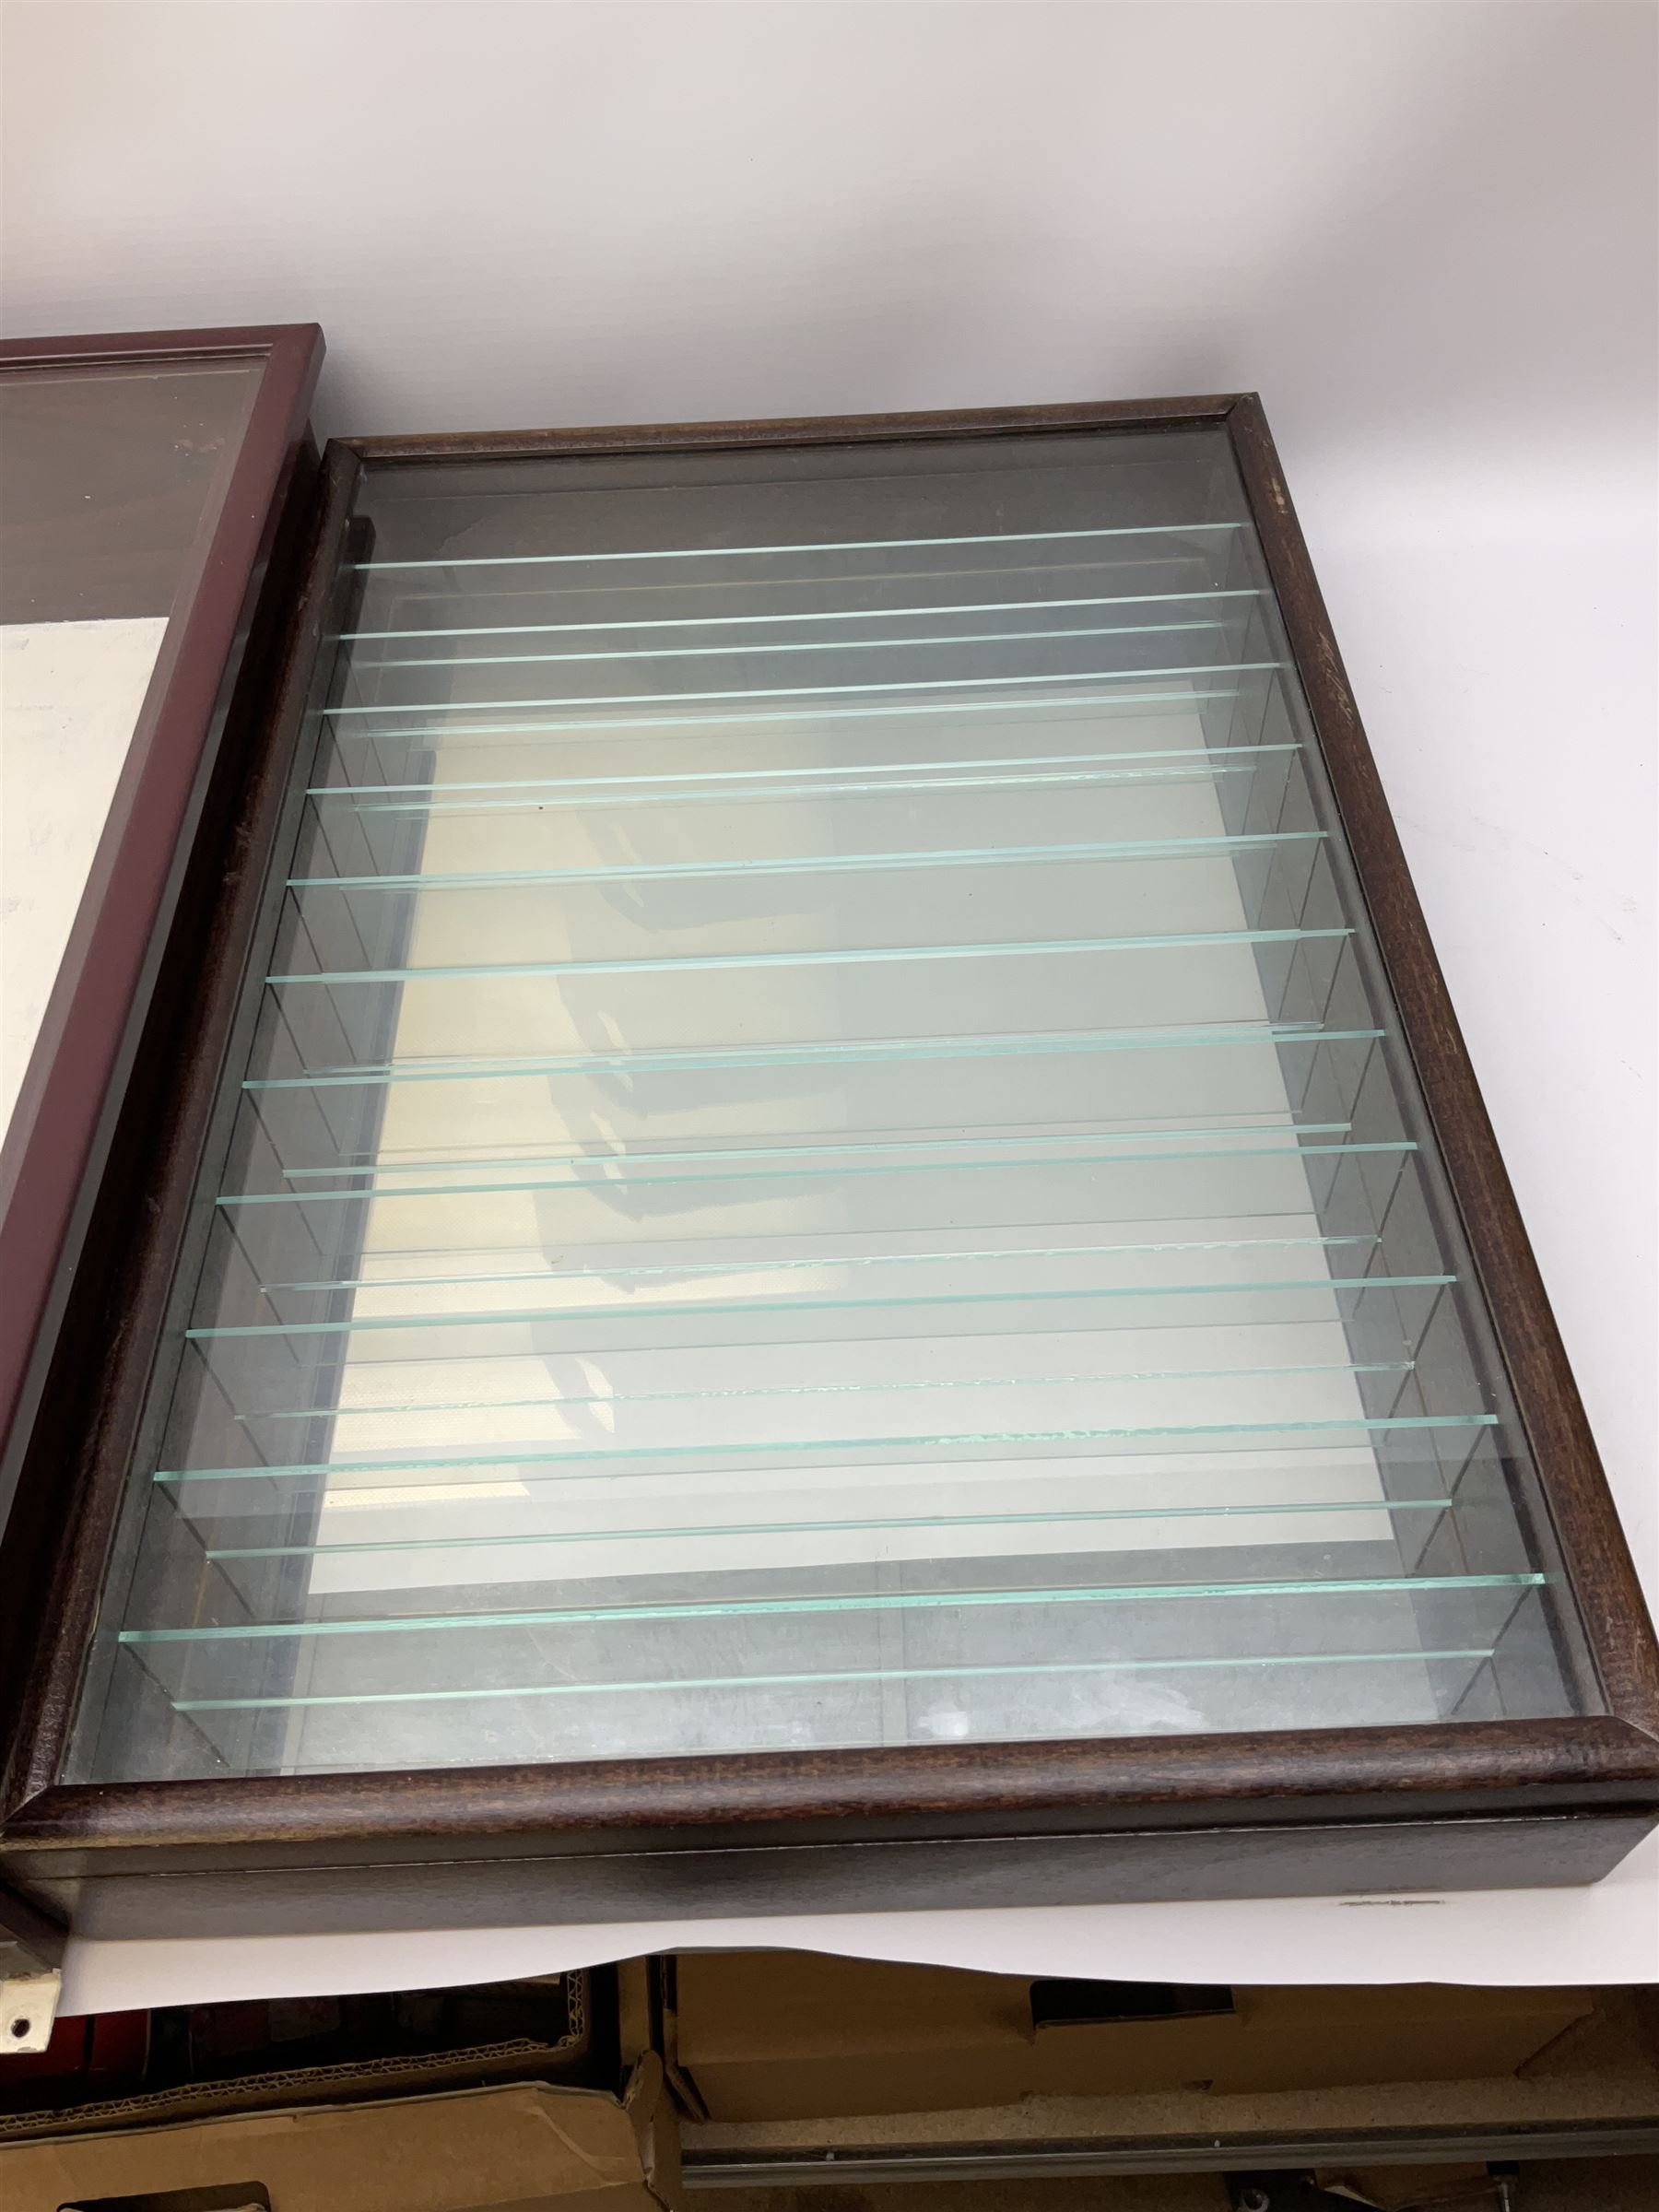 Die-cast model wall mounting display cabinet with mahogany finish and hinged glass door enclosing ei - Image 5 of 5